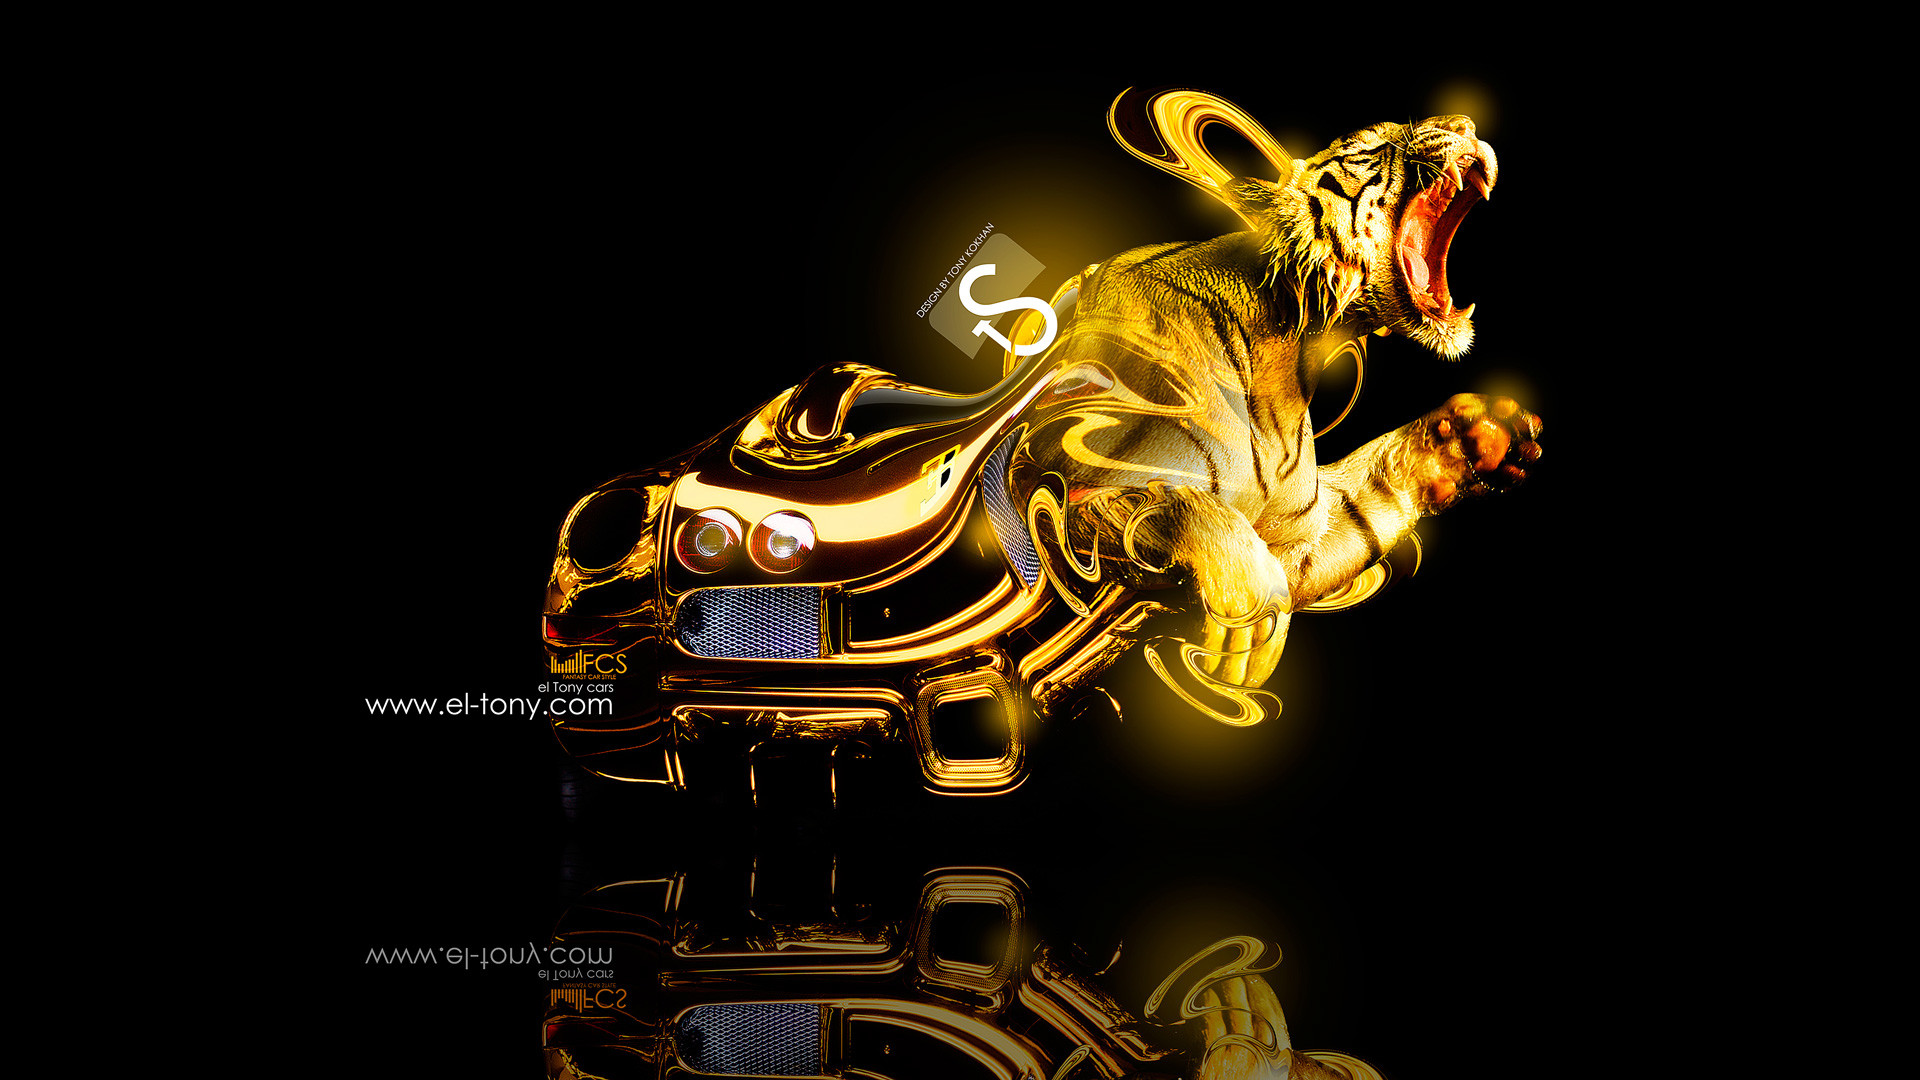 Cool Gold Cars Wallpapers – CHGLand.info